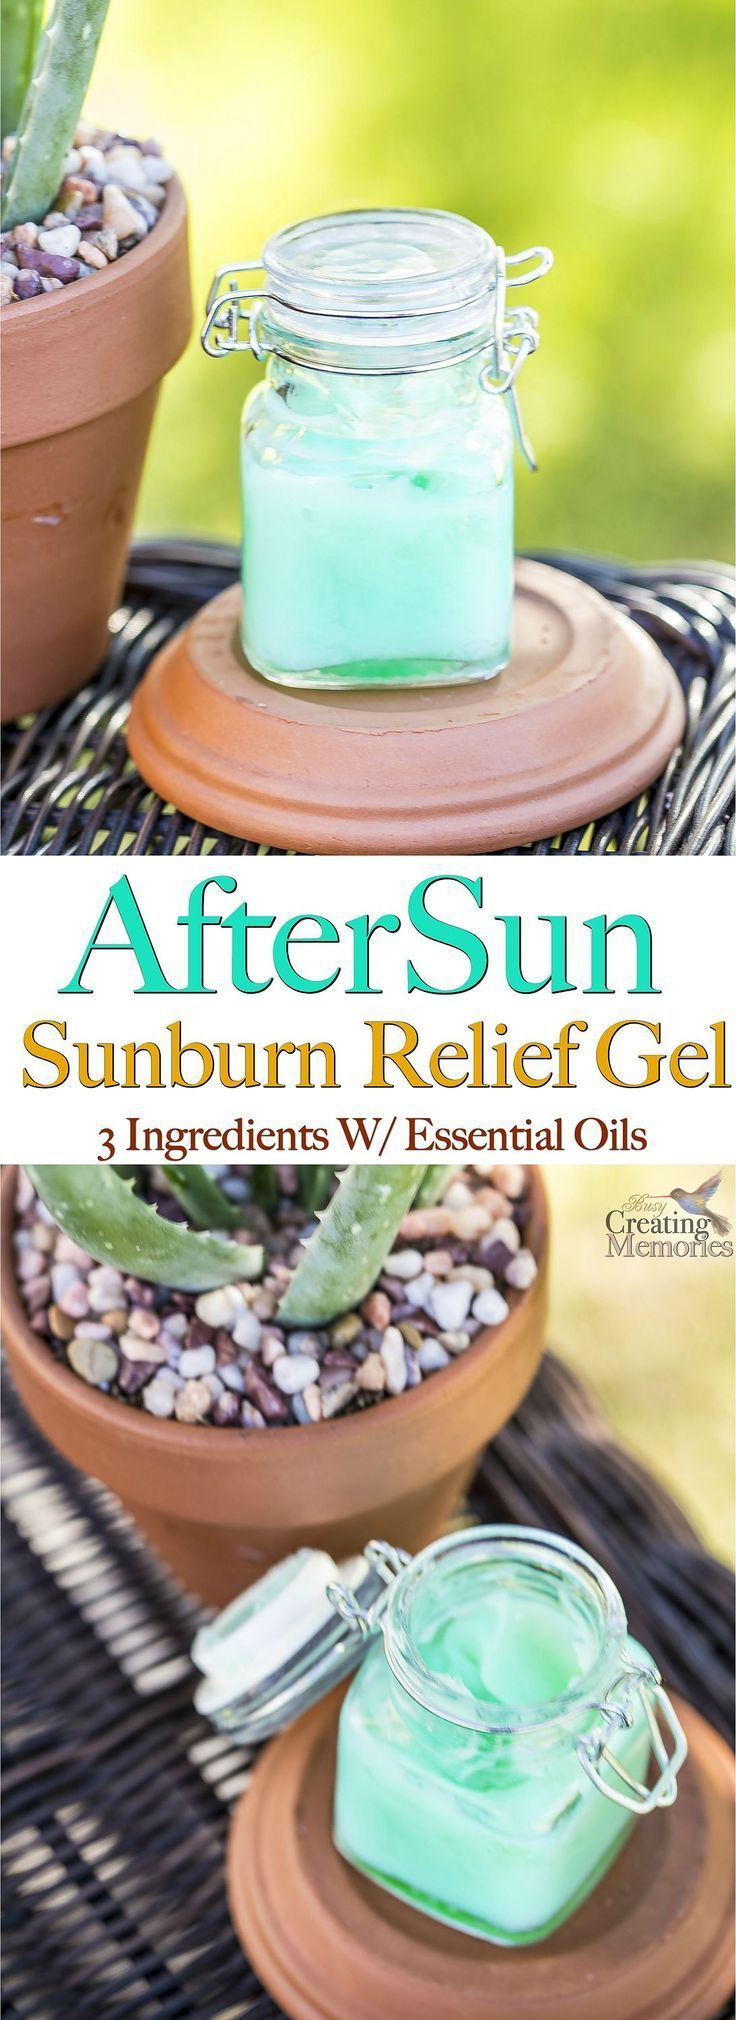 Say Goodbye to Painful, Itchy, Peeling sunburns and hello to fabulous summer skin care after the sun! This DIY AfterSun Sunburn relief Gel is the BEST as it instantly Soothes, Cools, heals and moisturizes your skin for quick healing. It is homemade with 3